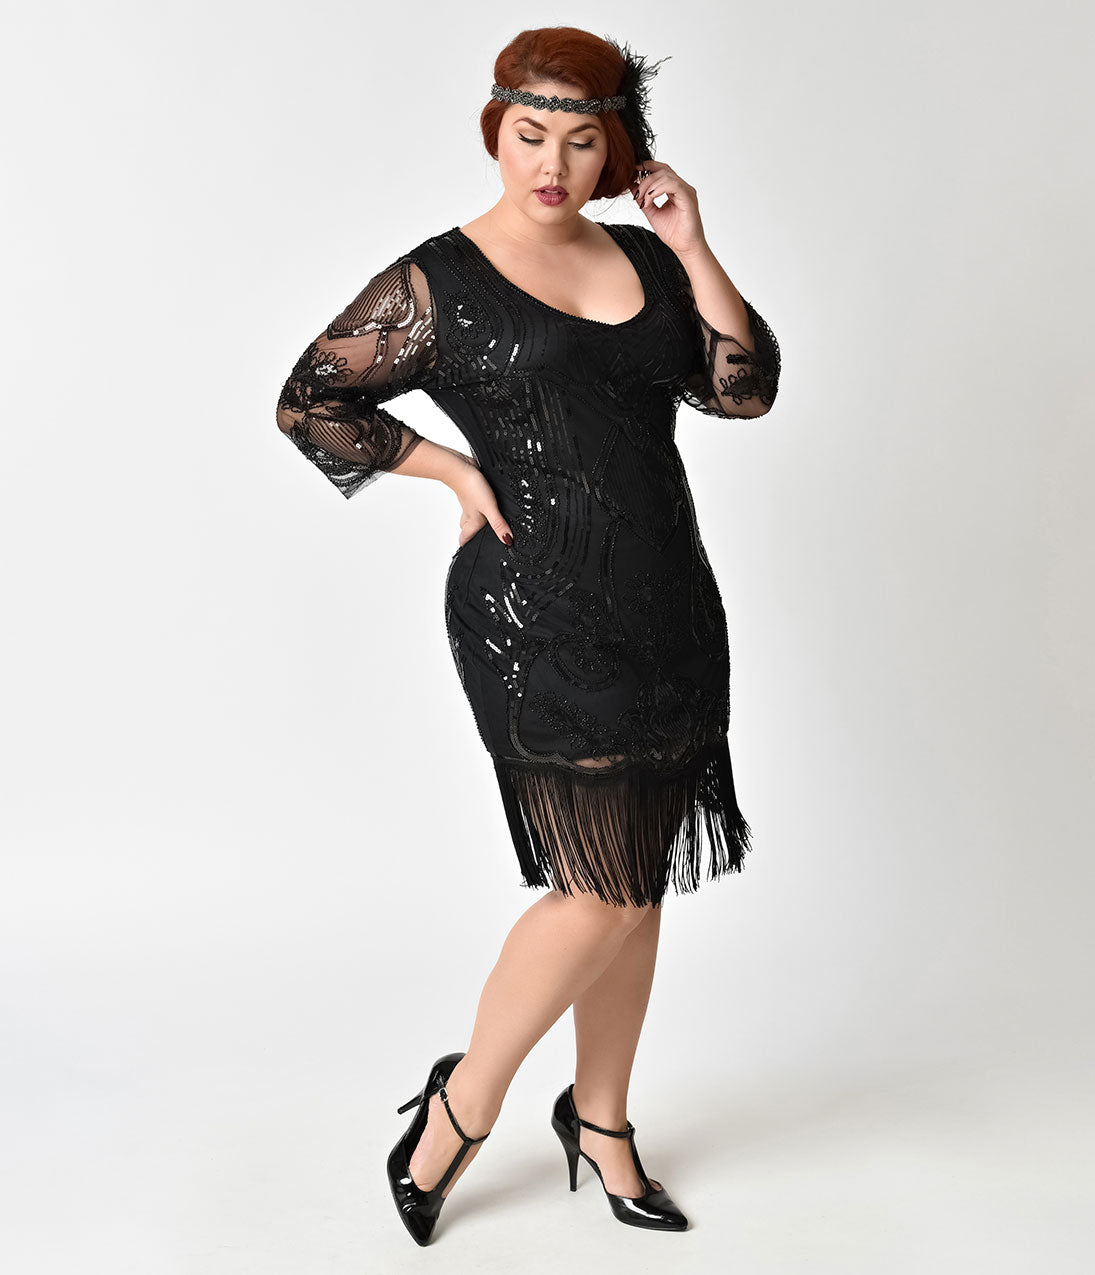 Great Gatsby Dress – Great Gatsby Dresses for Sale Unique Vintage Plus Size Black Beaded  Sequin Margaux Sleeved Fringe Flapper Dress $110.00 AT vintagedancer.com